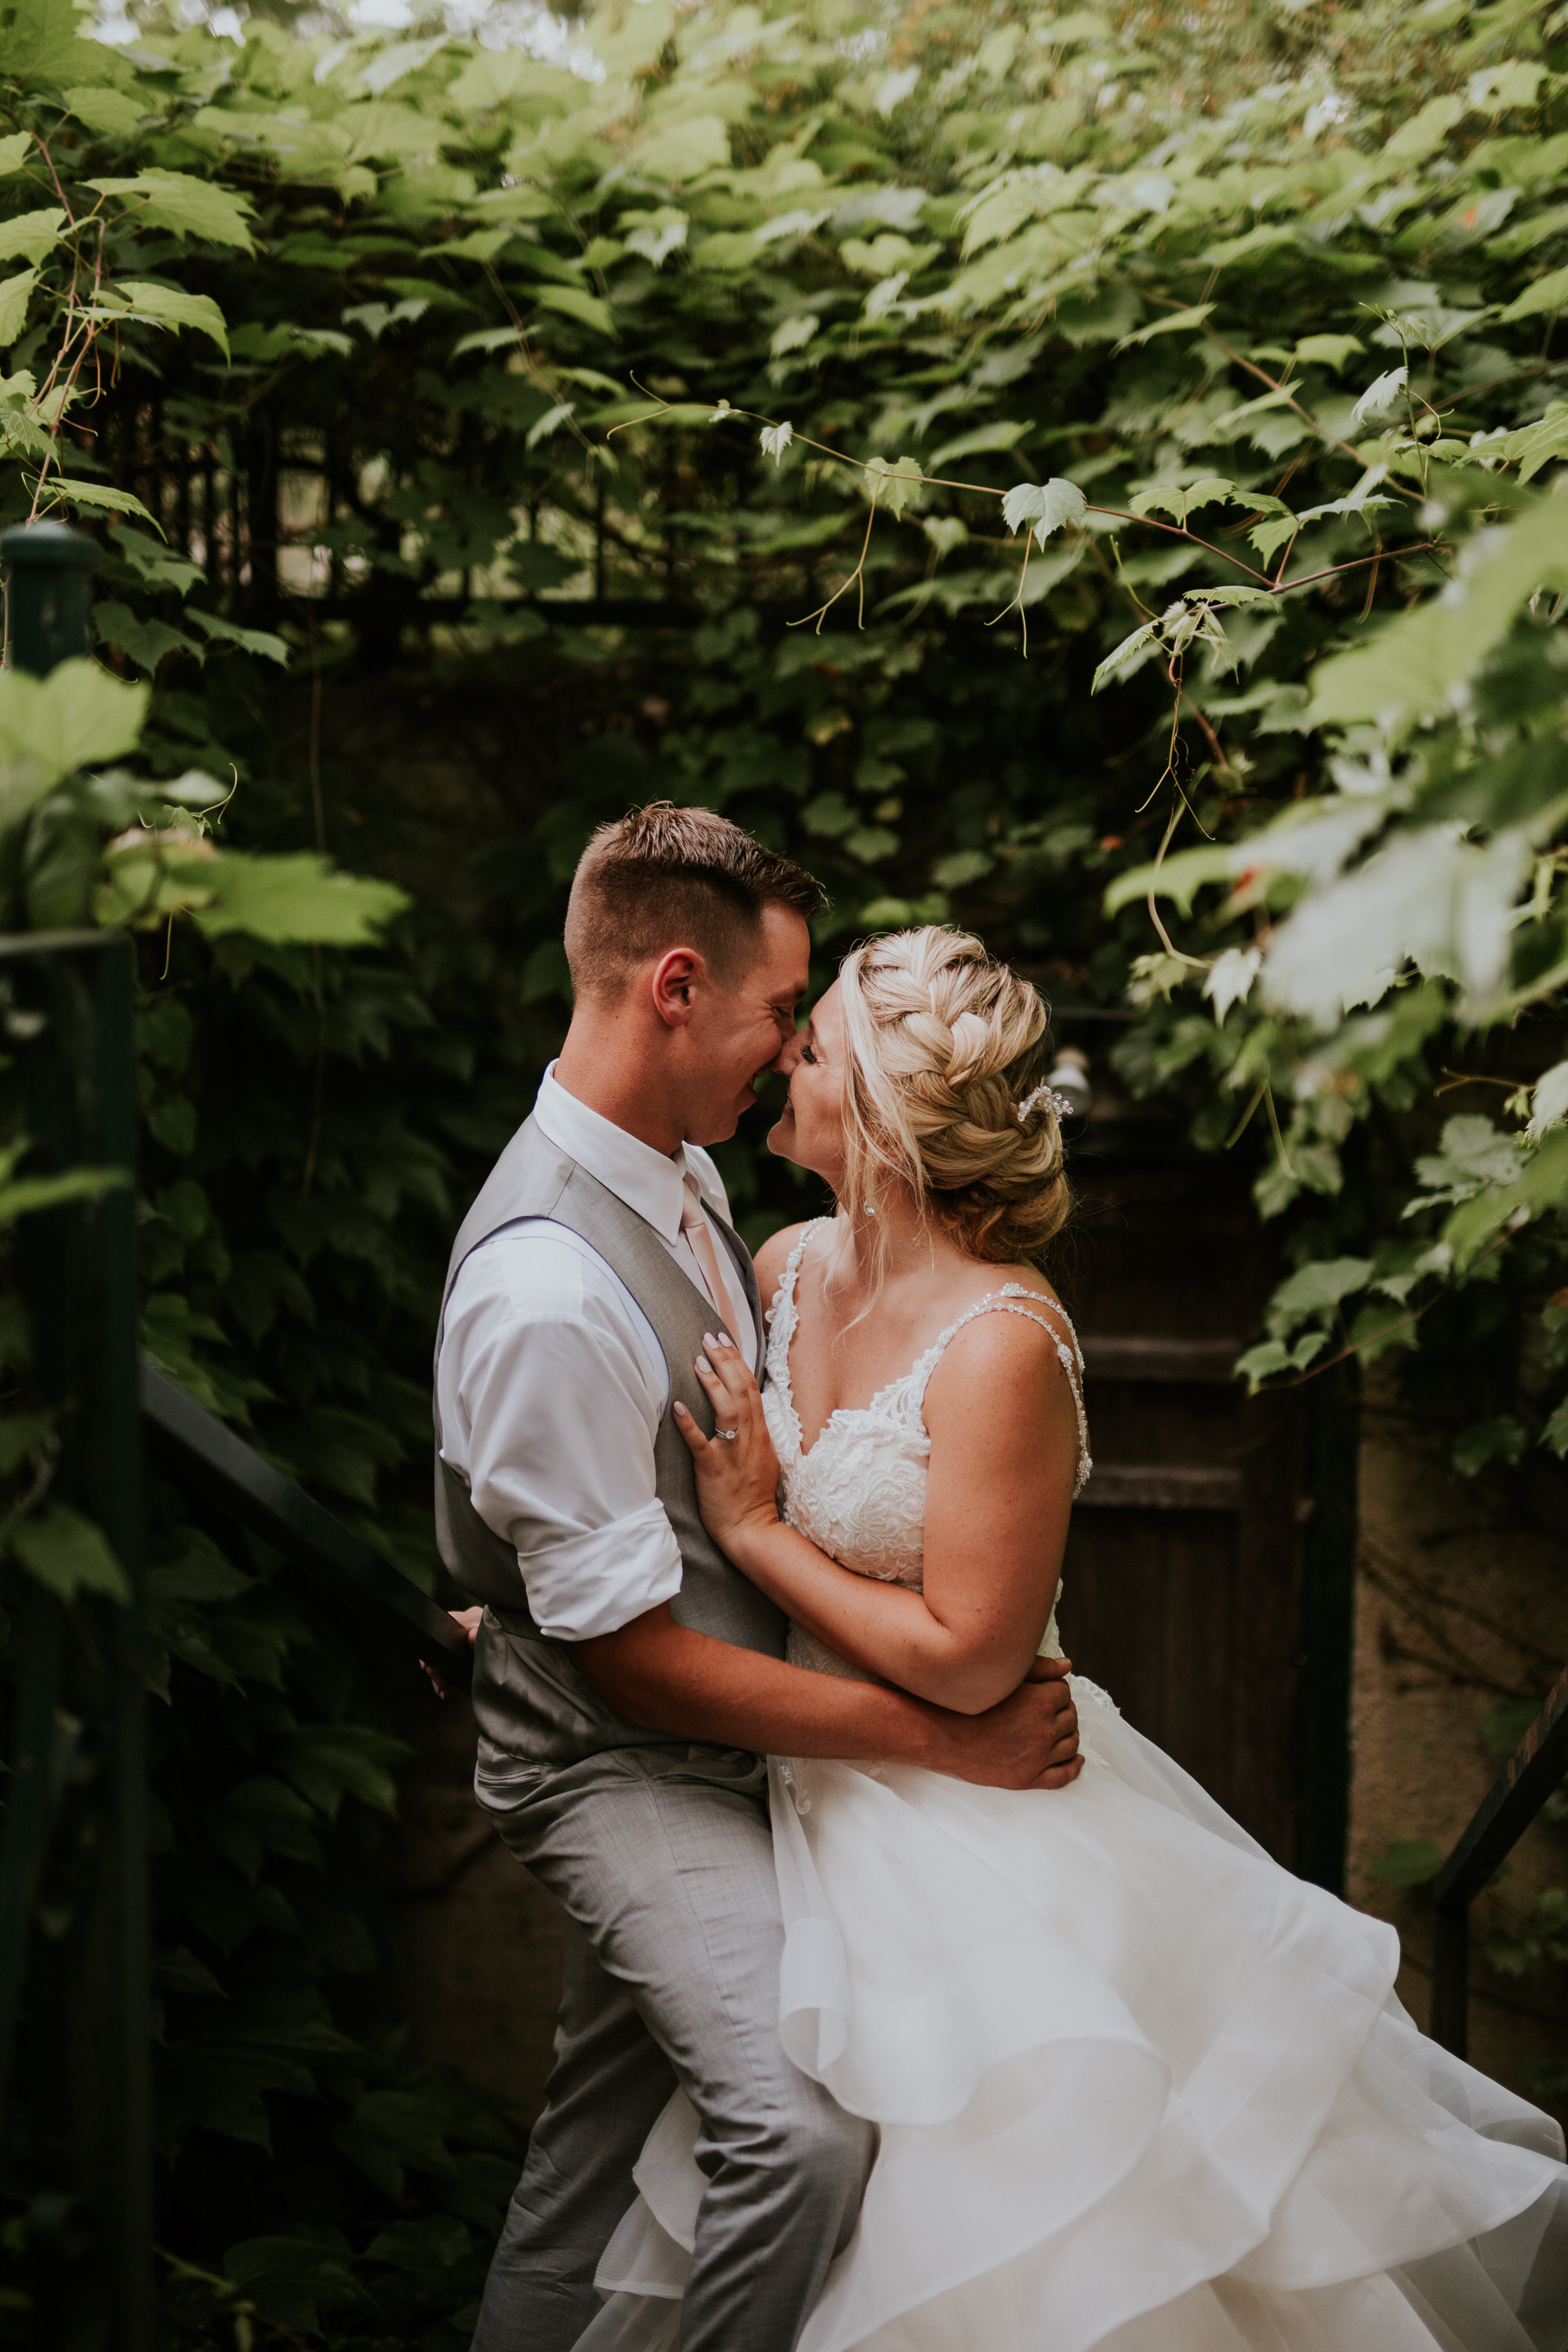 Elmhirst Resort Wedding - kissing on the stairs